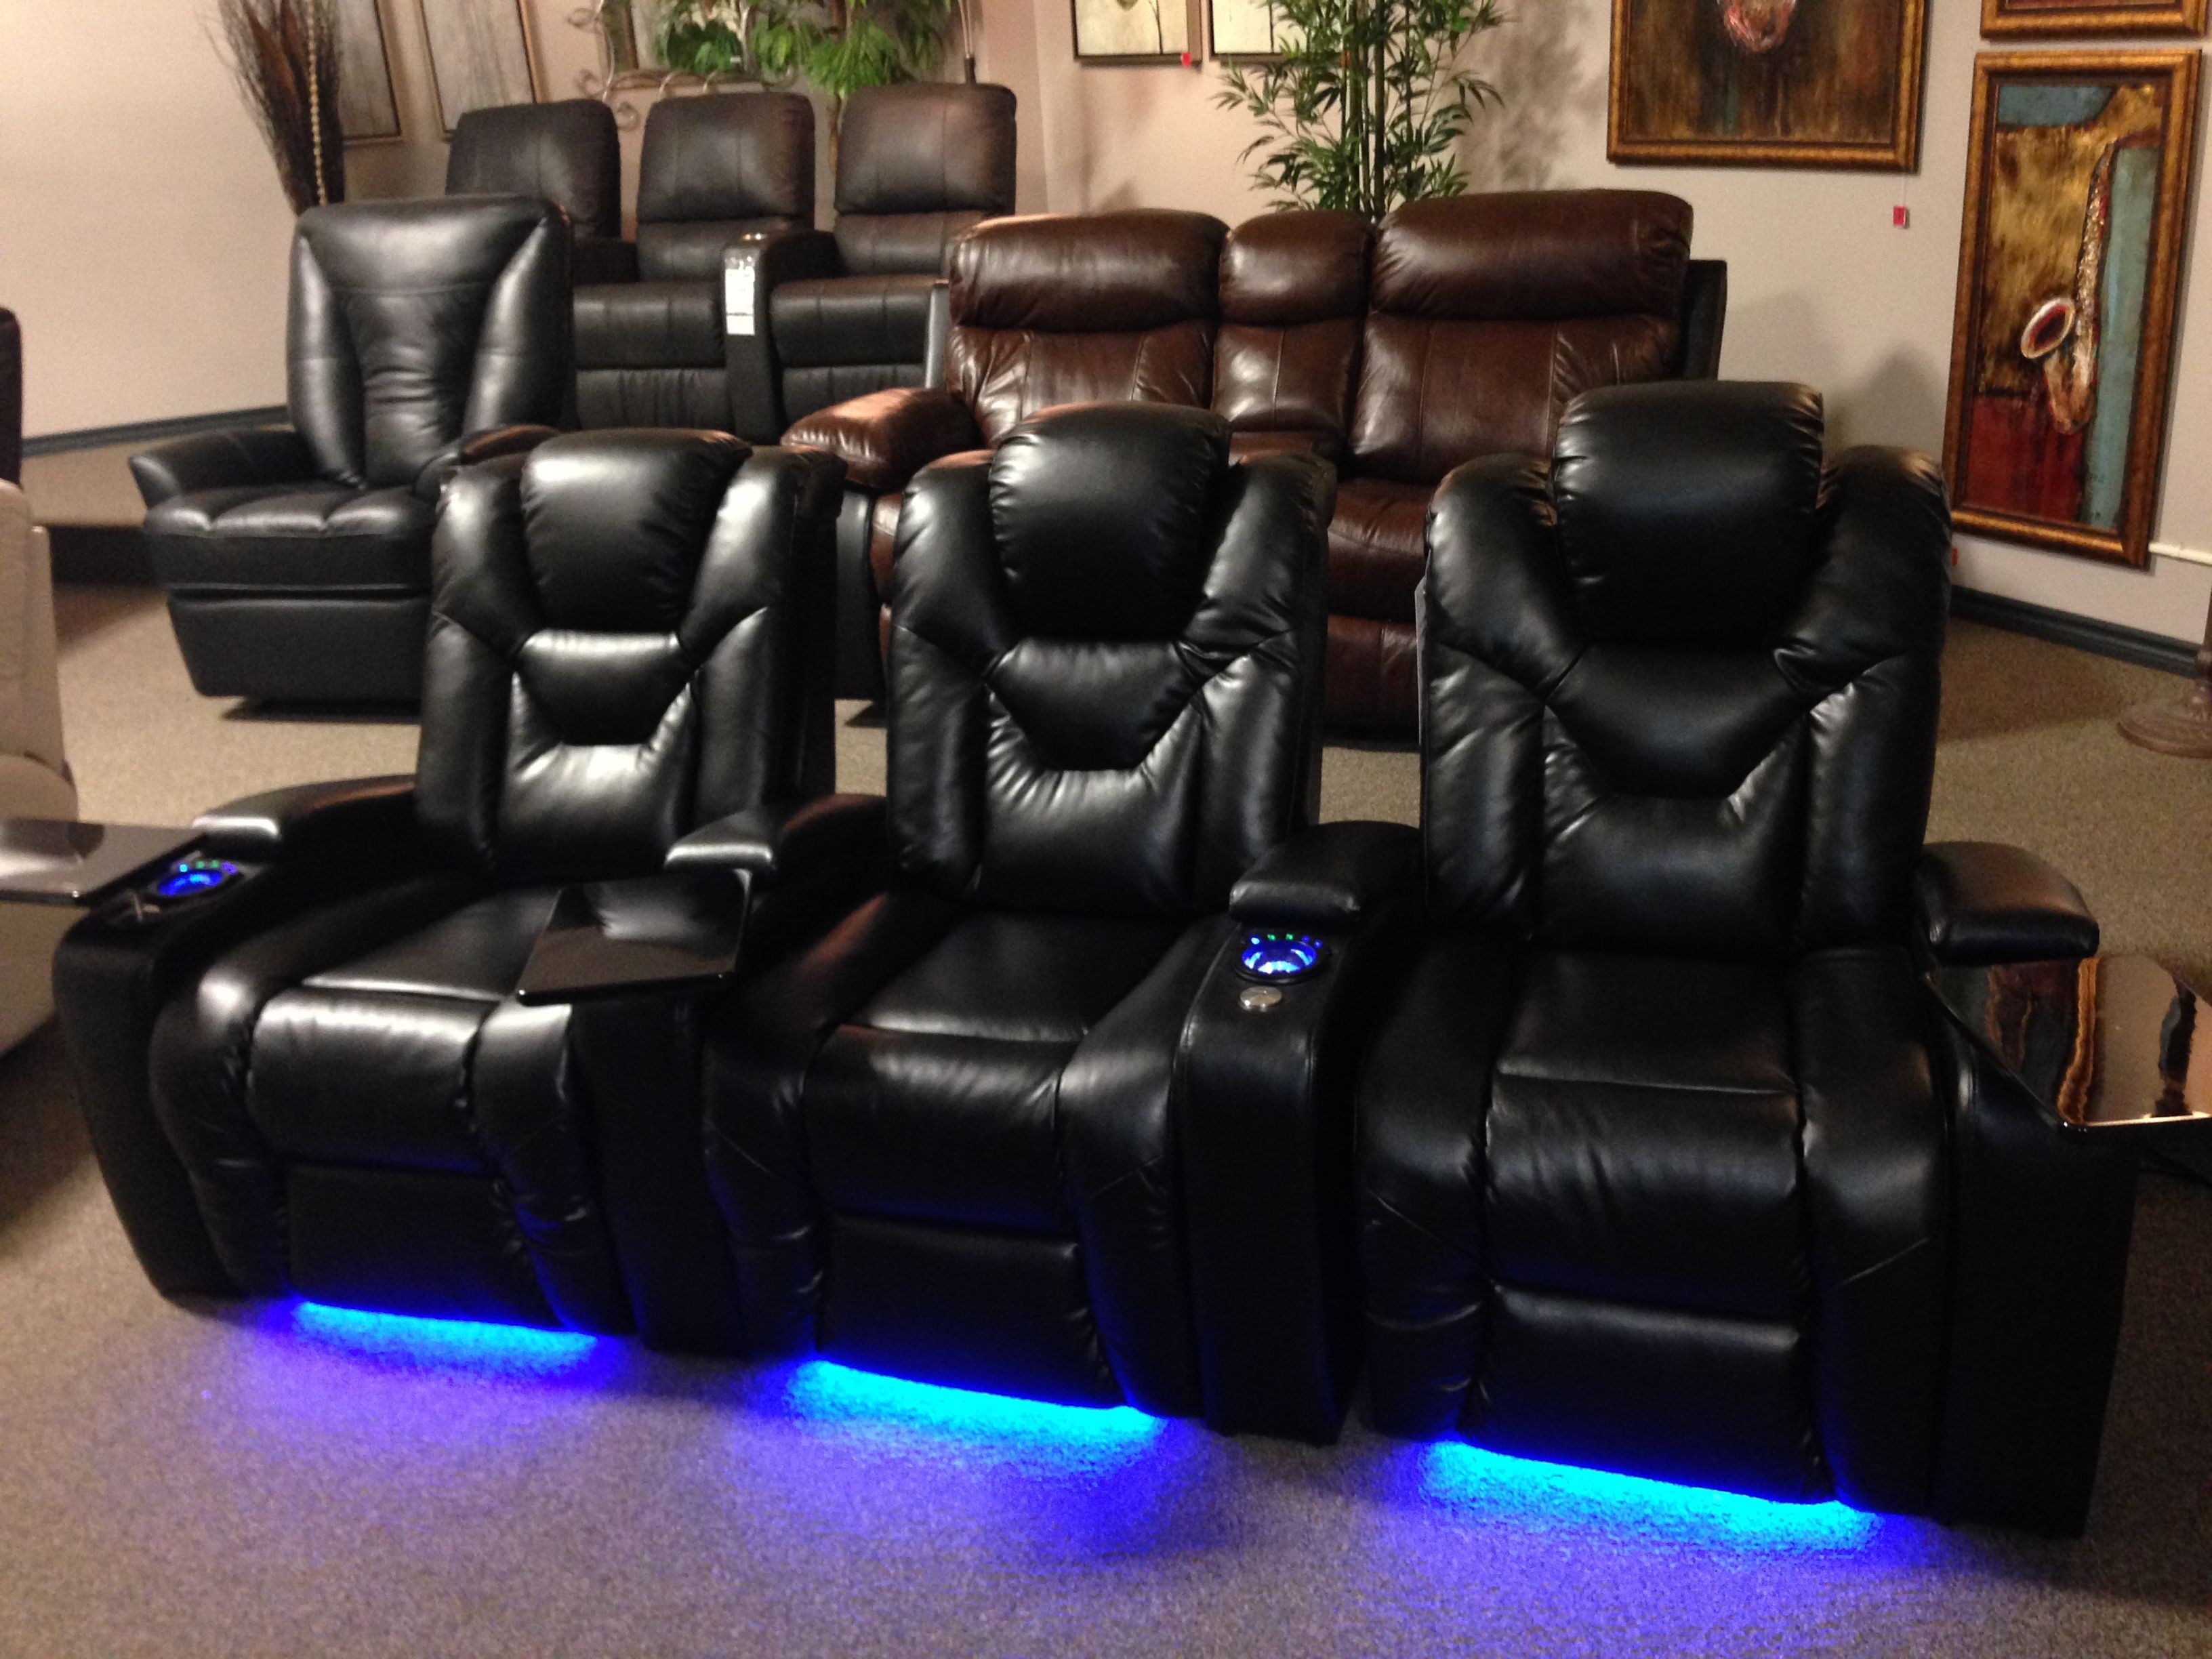 Sofaland Spain Our New Turbo Home Theater Power Recliners Power Adjustable